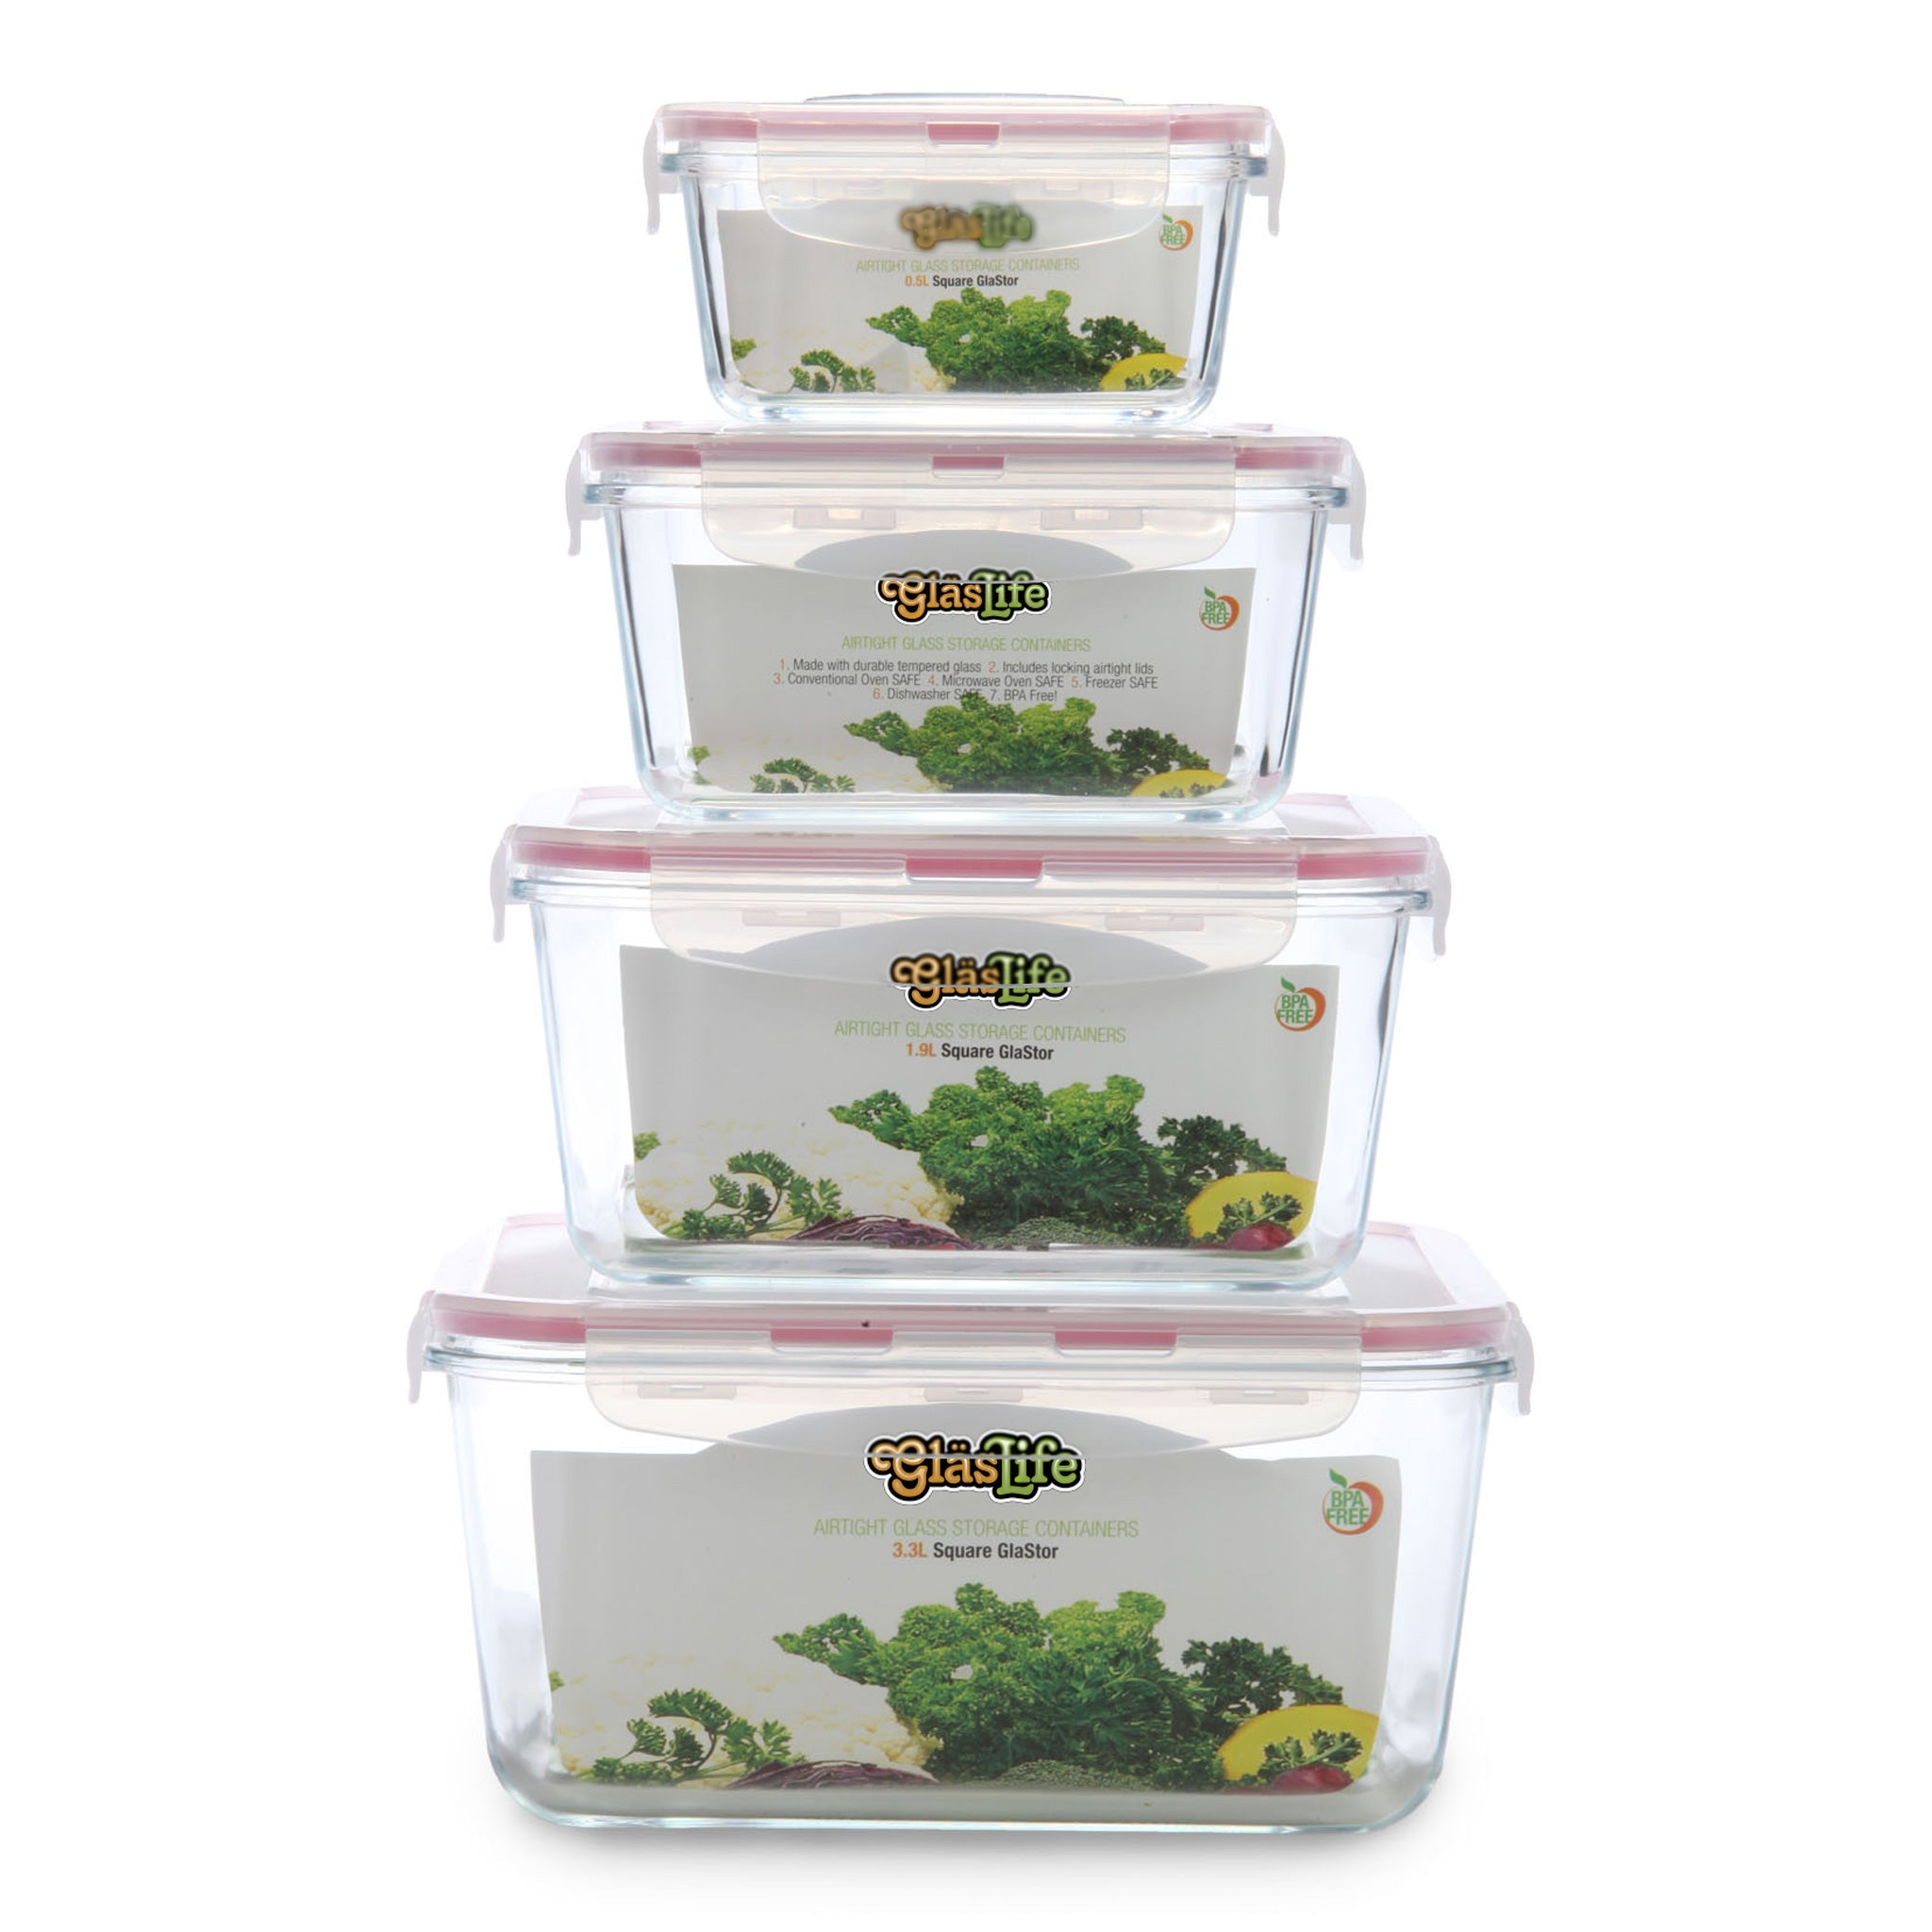 GlasLife® Air-Tight Glass Storage Container - 4 Piece Square Set GLS04SN 4-Piece Set